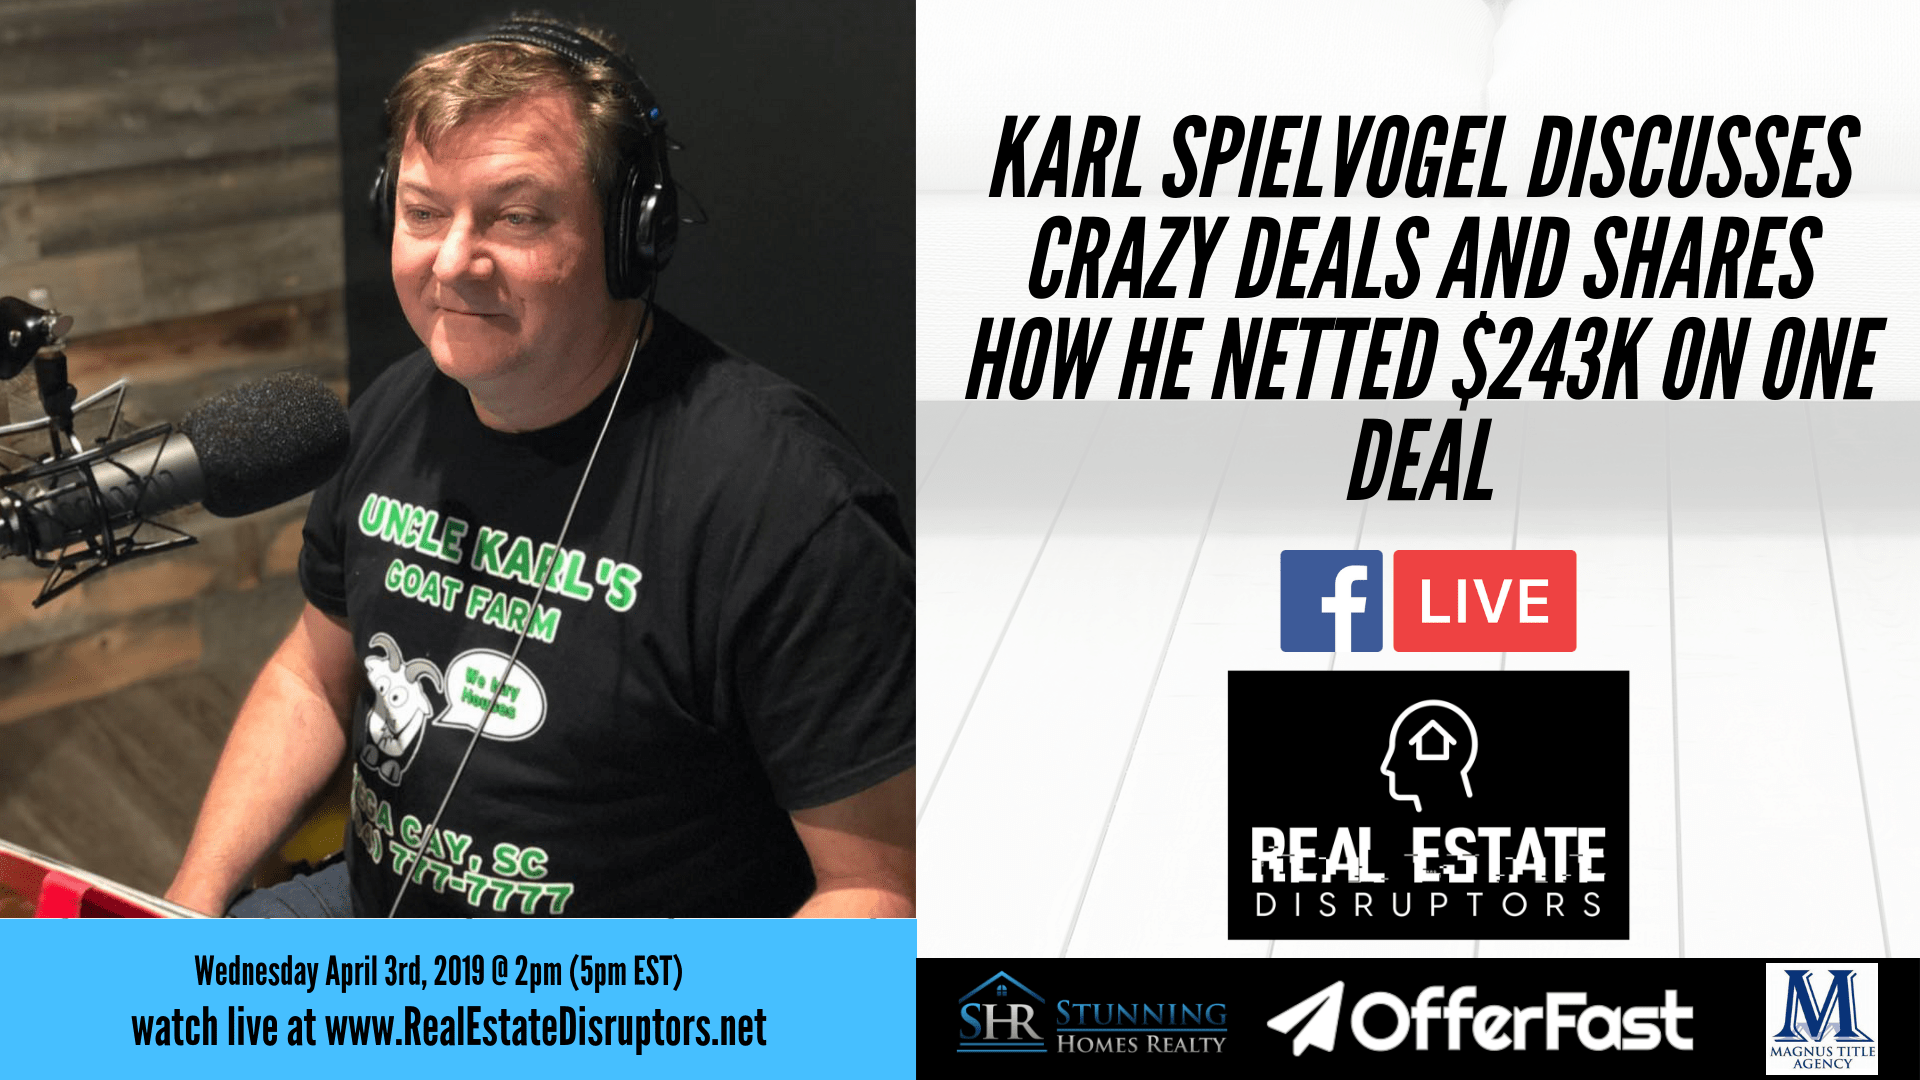 Karl Spielvogel Shares How Specialing Crazy Deals Turns into $200k Assignment Fees